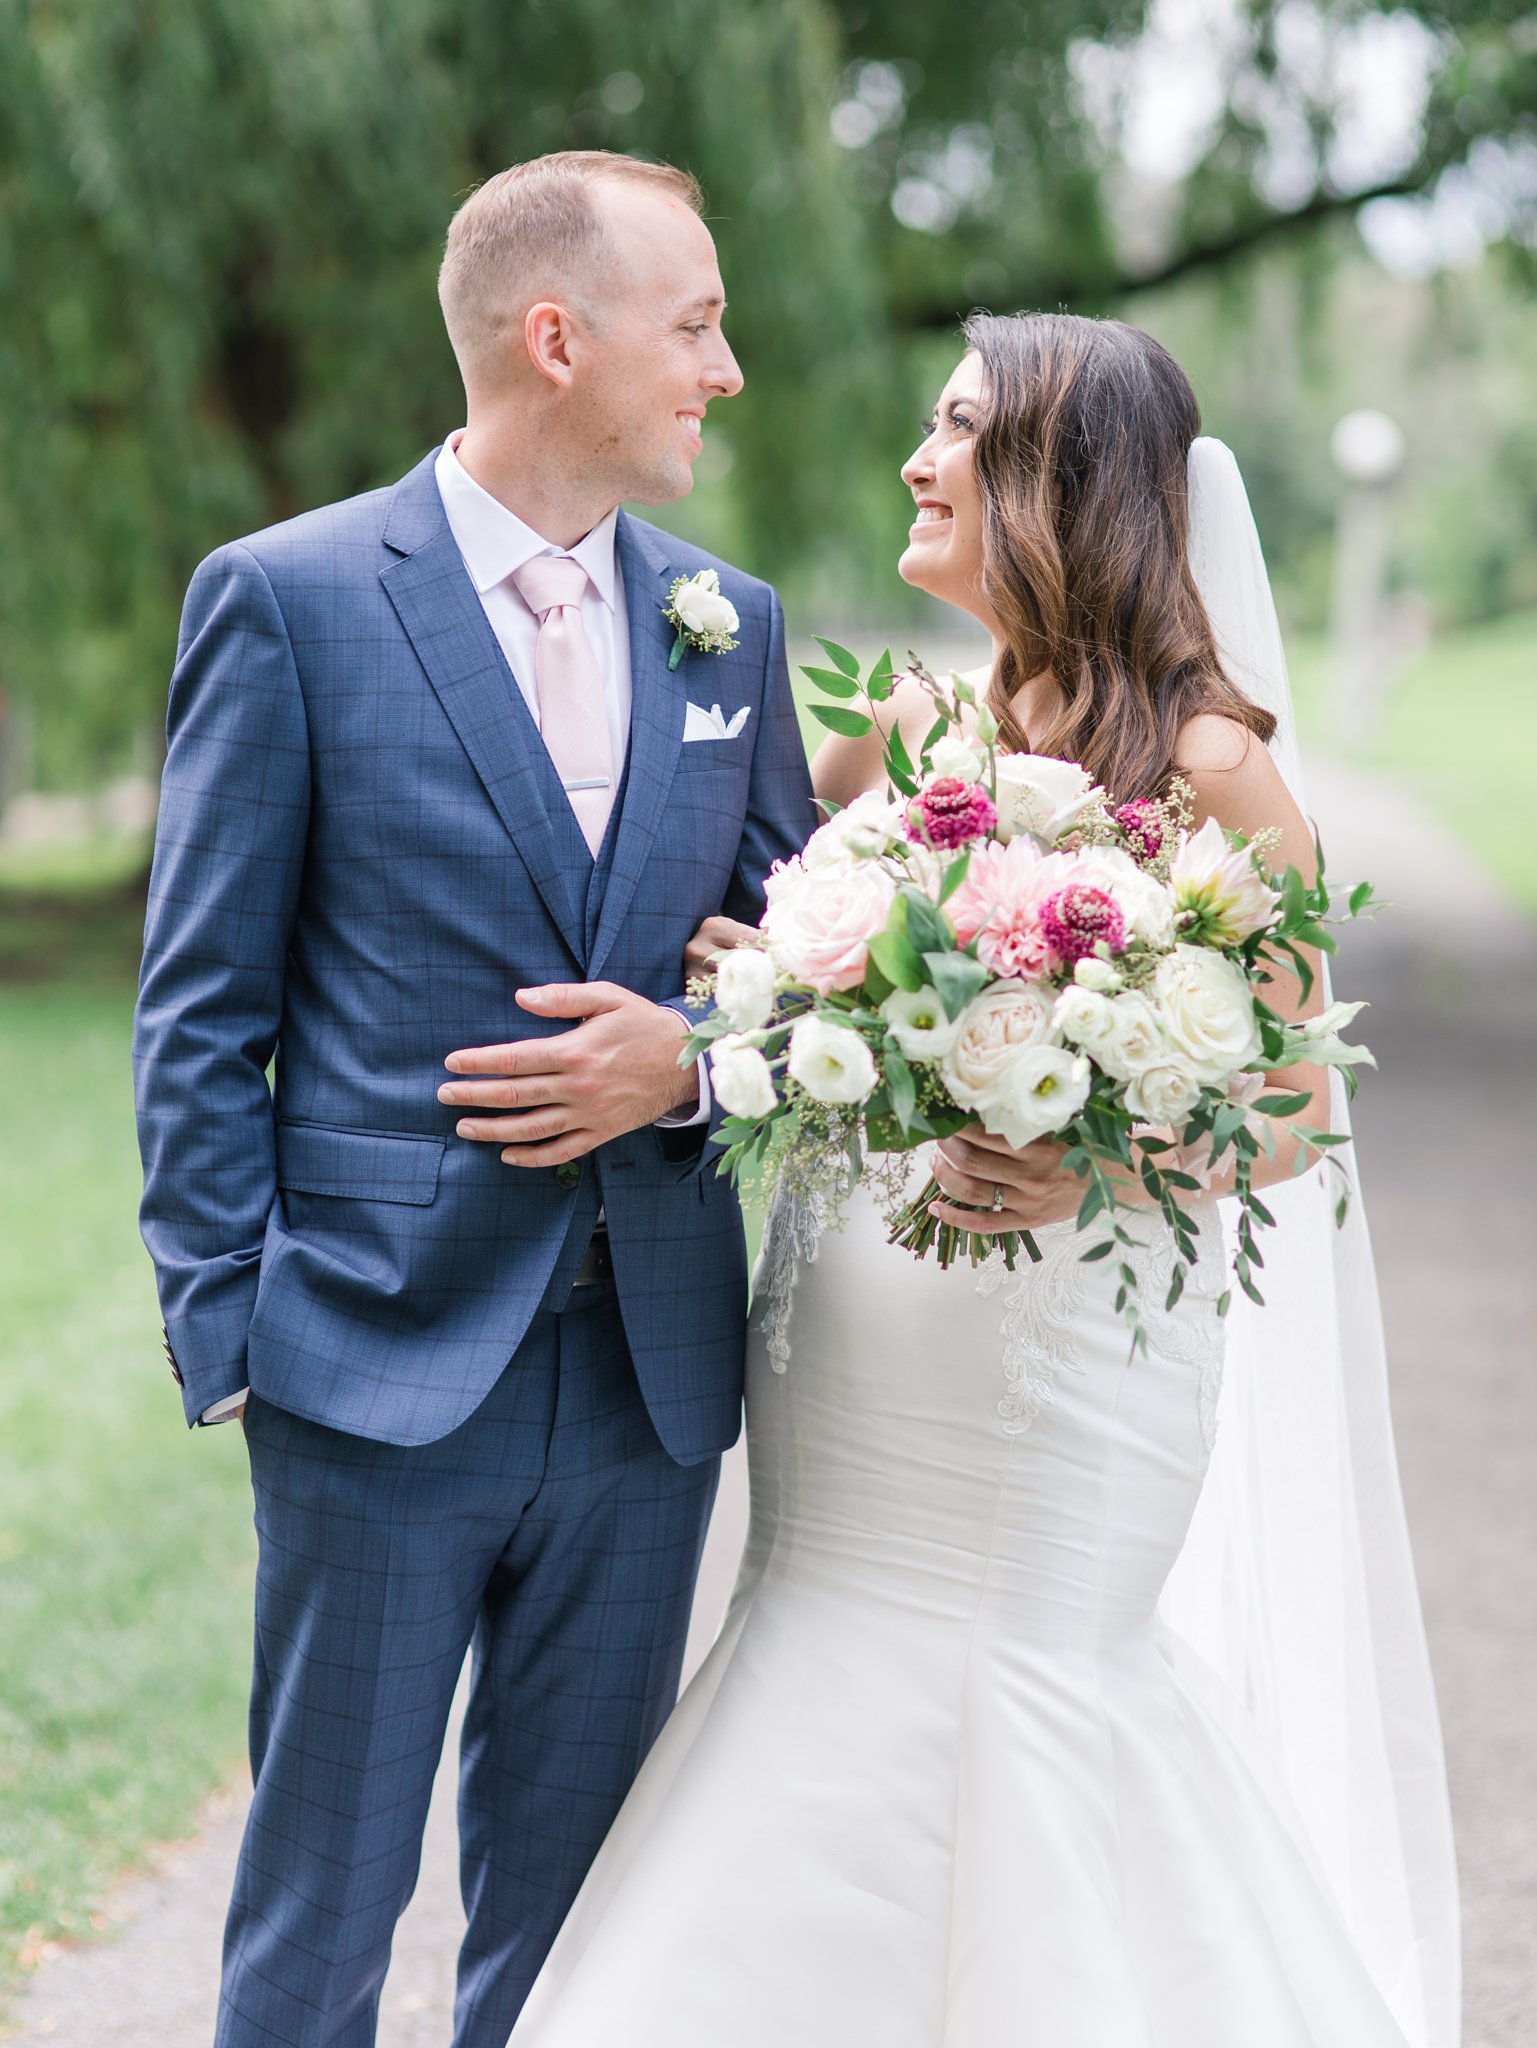 712d849792 Park near Horticulture Building wedding at Lansdowne Amy Pinder Photography.  Kathryn ...